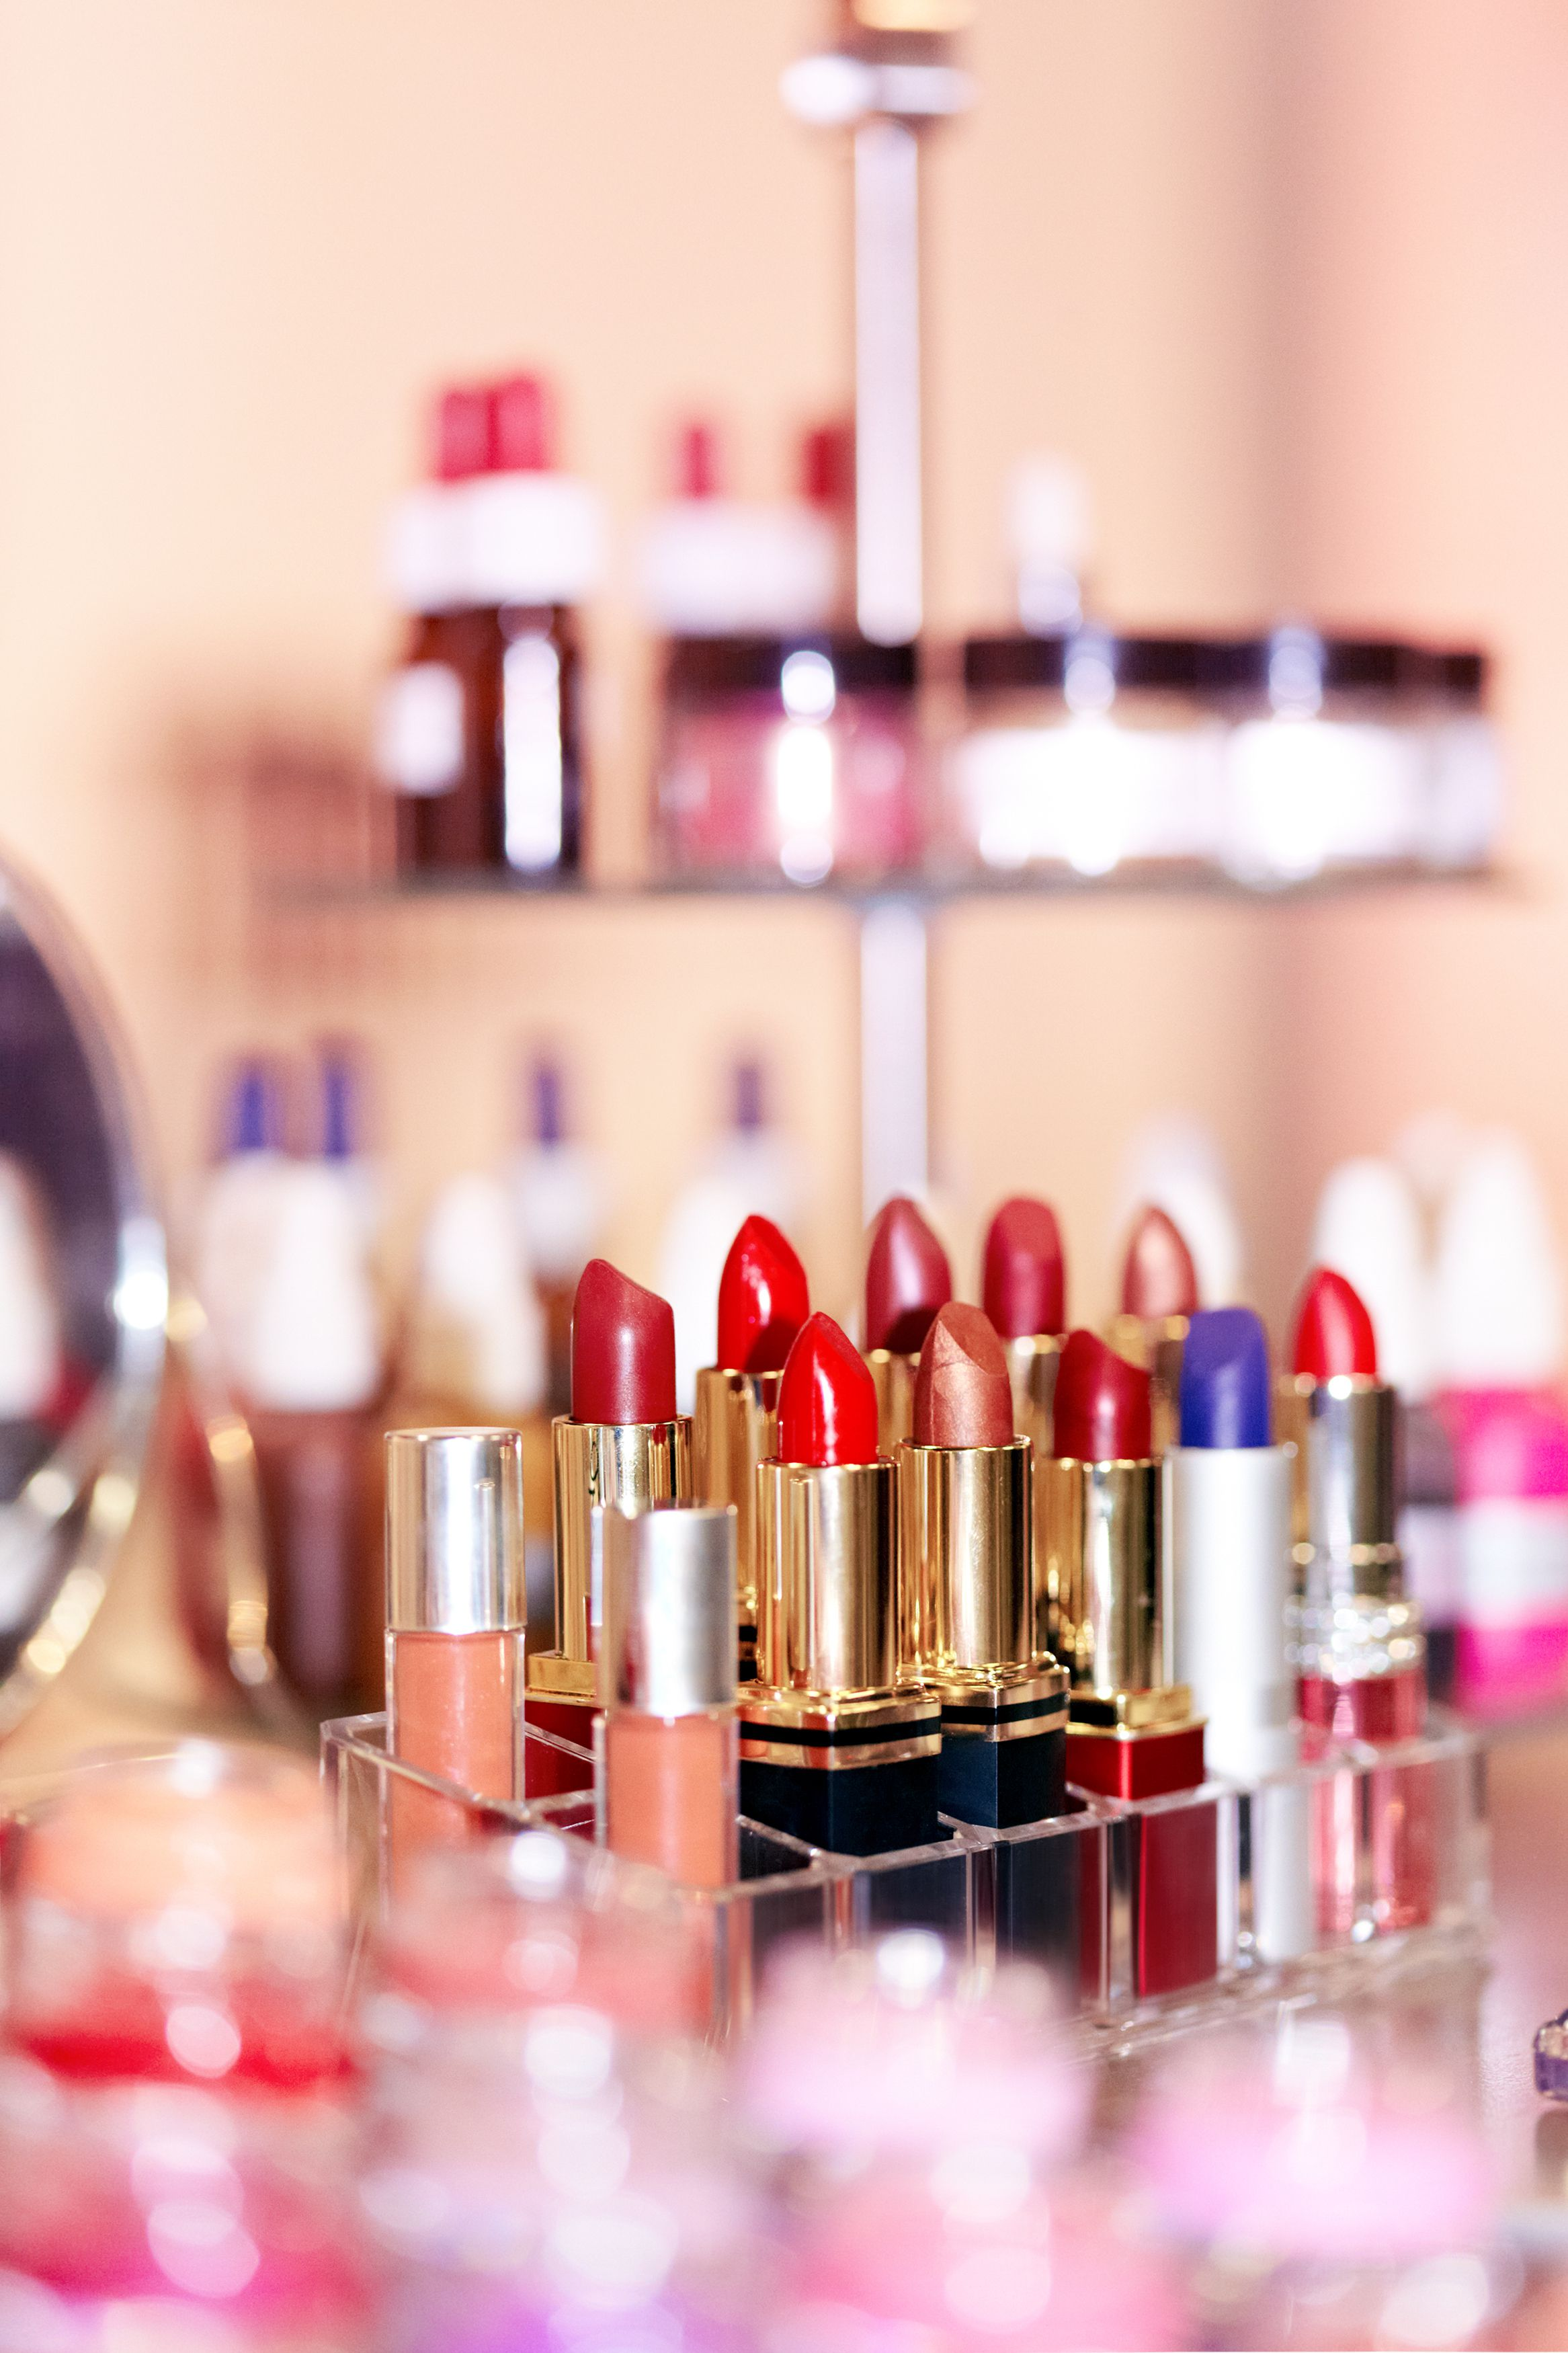 Cosmetics And Makeup: Common Mistakes Of Importing Cosmetics To The USA